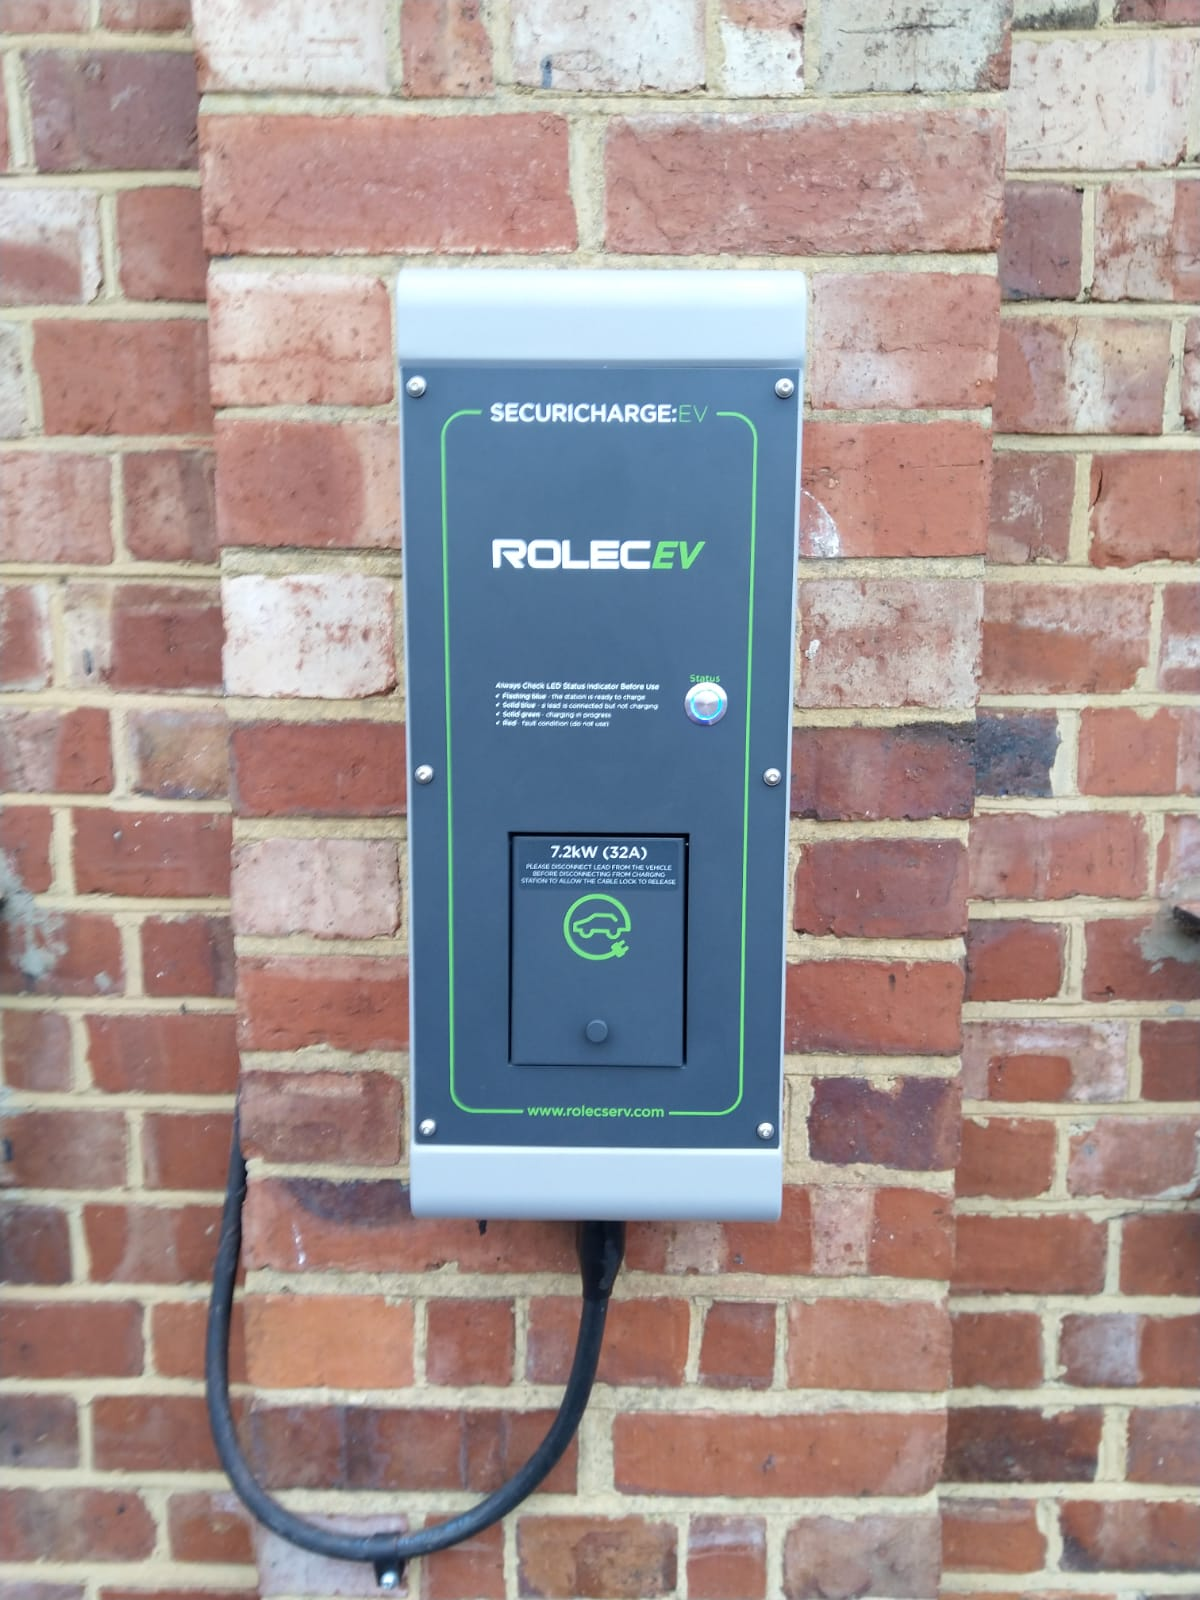 Car Charging Installation in St Albans, Hertfordshire and London